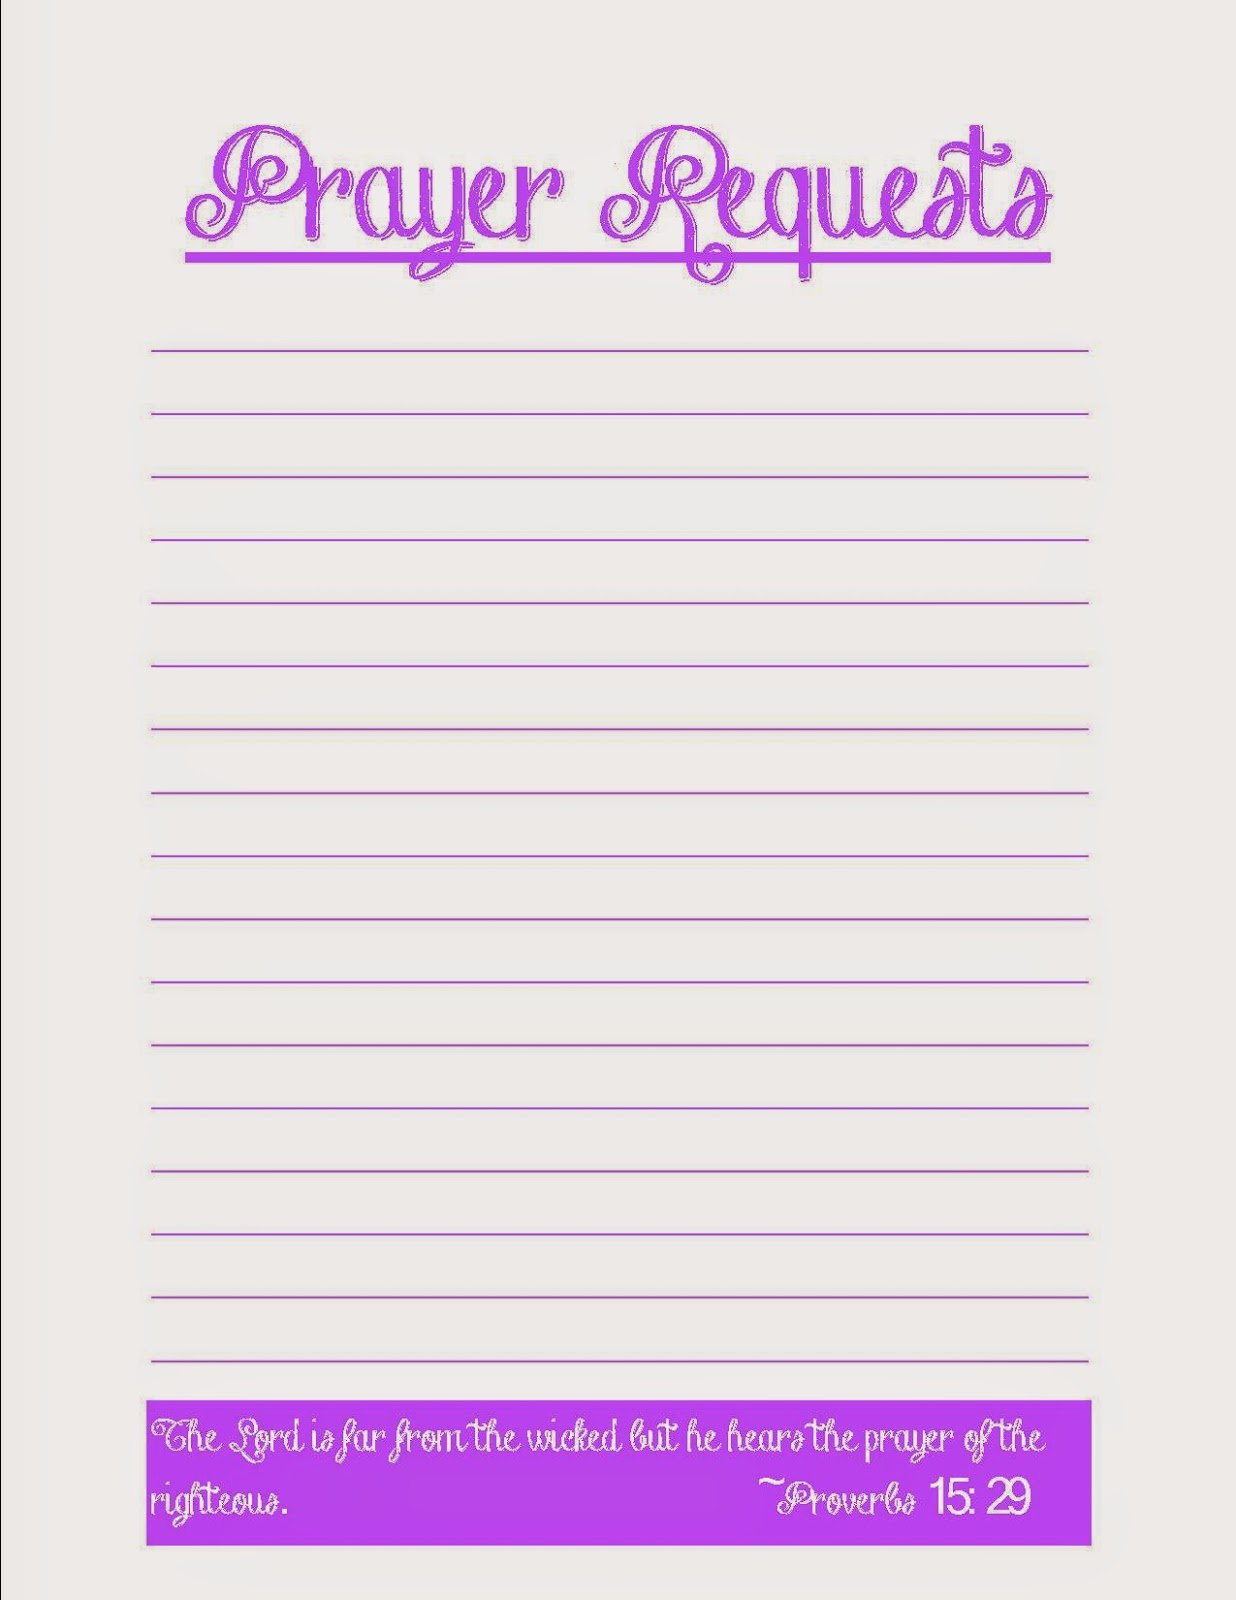 This is an image of Sizzling Prayer List Printable